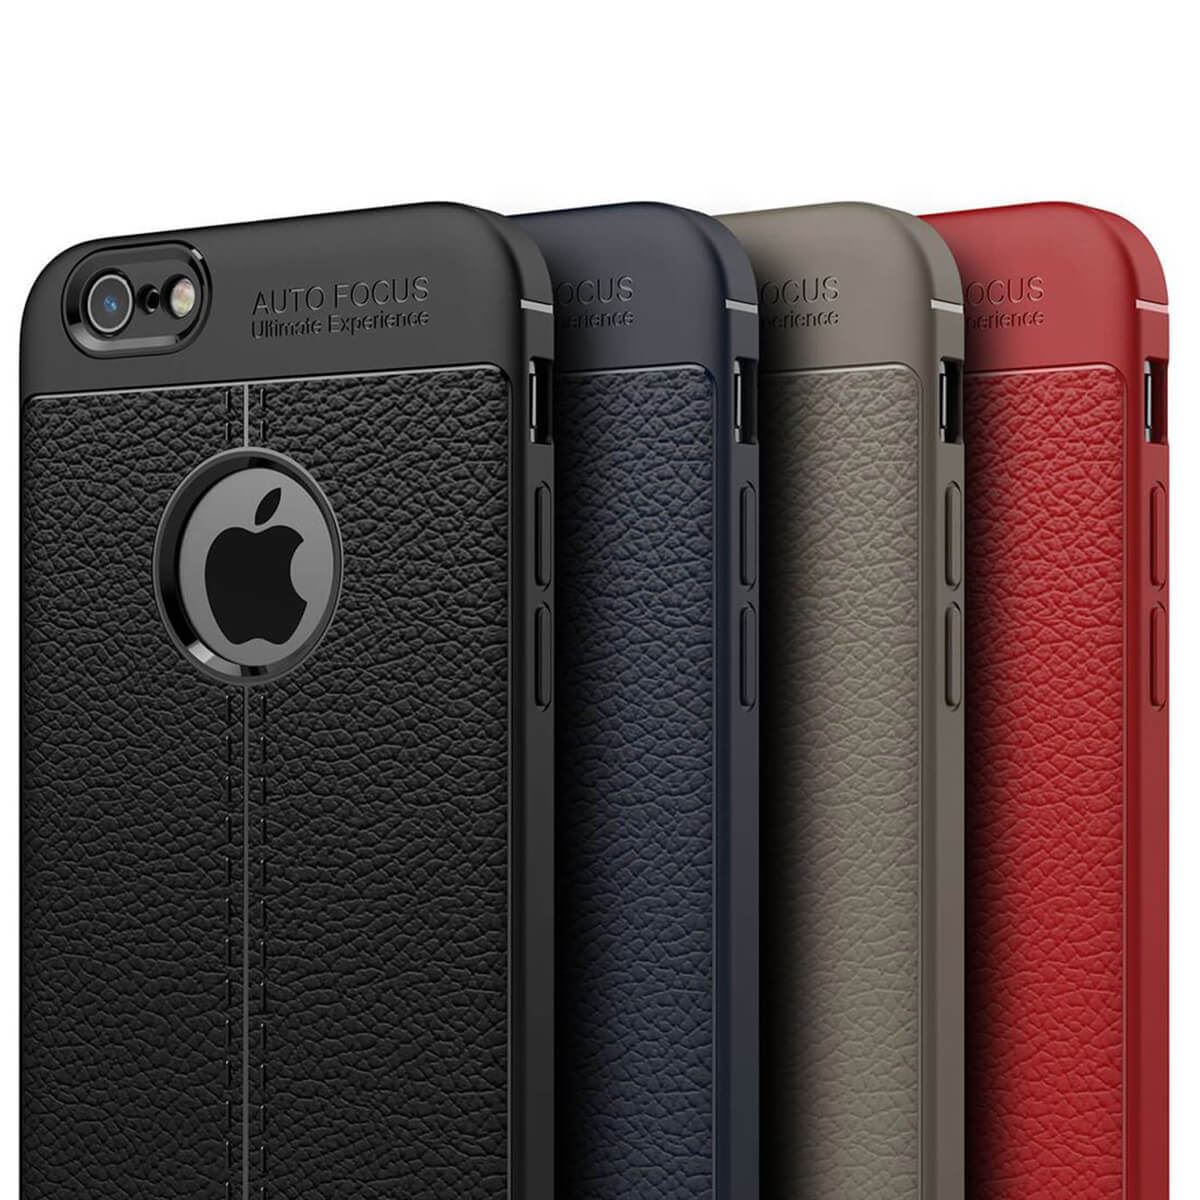 thumbnail 11 - Protective Leather Case For Apple iPhone Luxury Shockproof Pattern Soft TPU